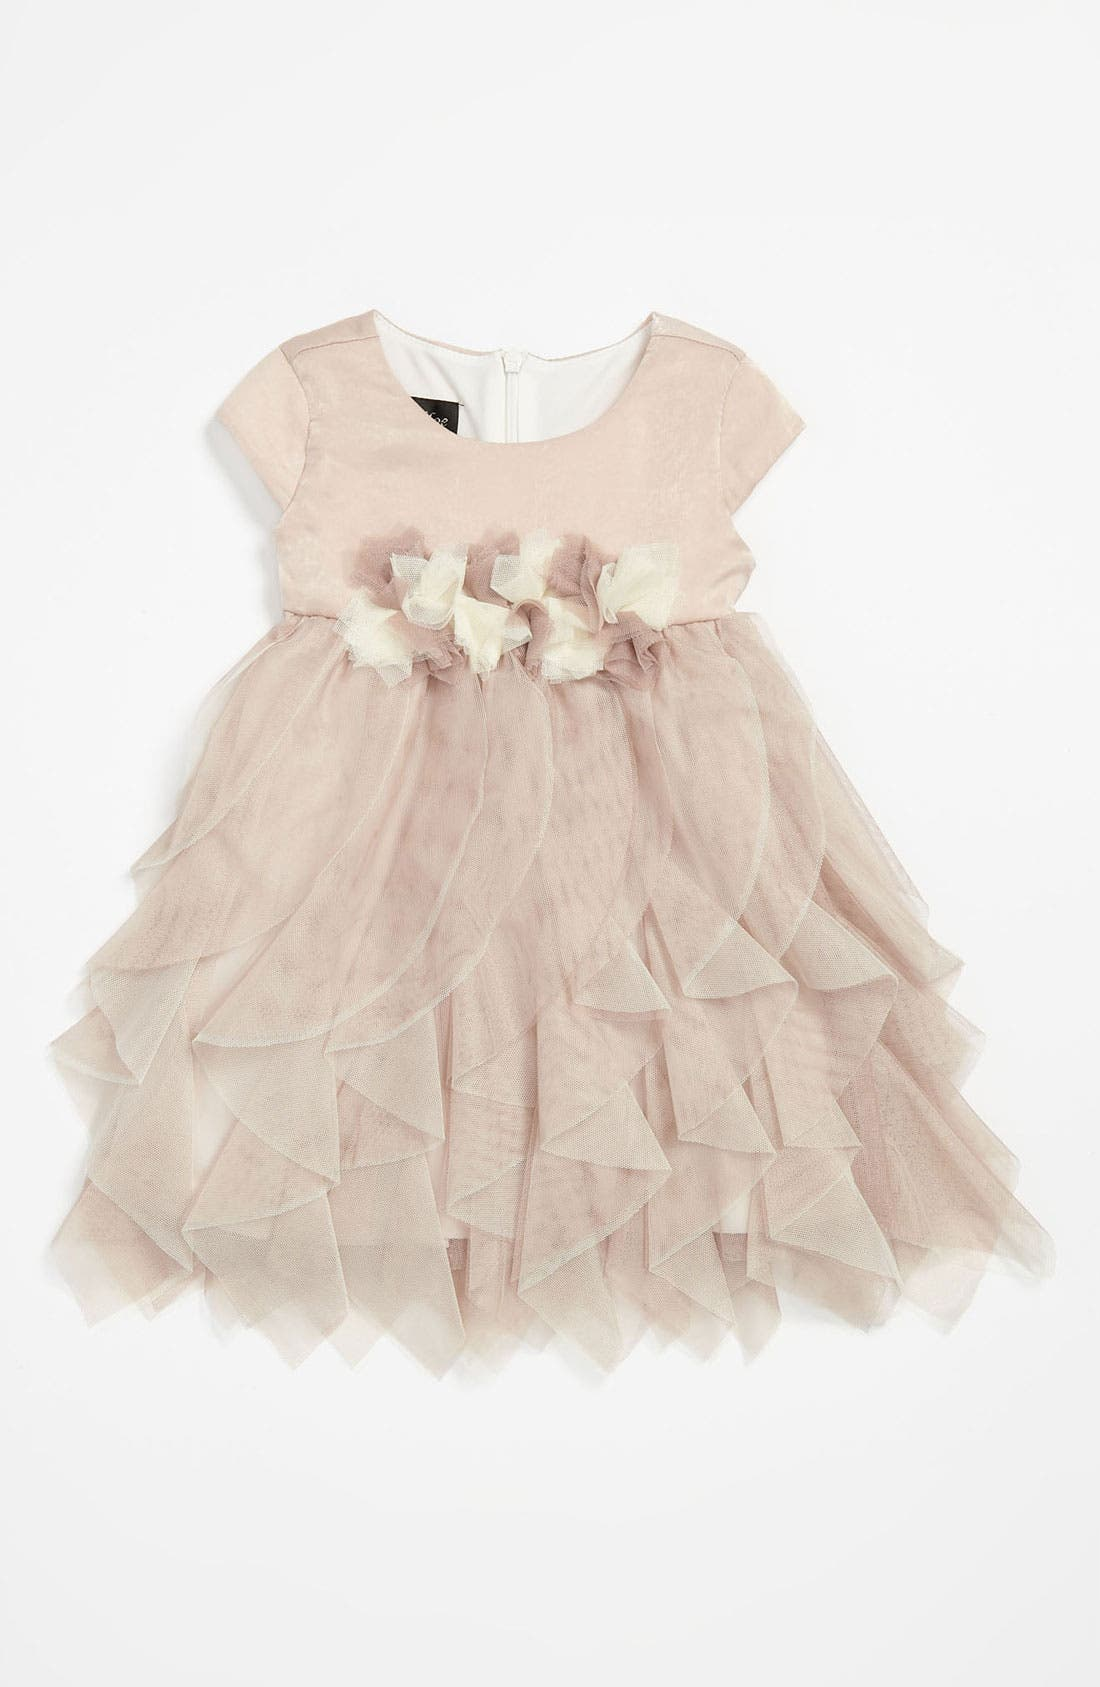 Alternate Image 1 Selected - Isobella & Chloe 'Pixie' Dress (Toddler)